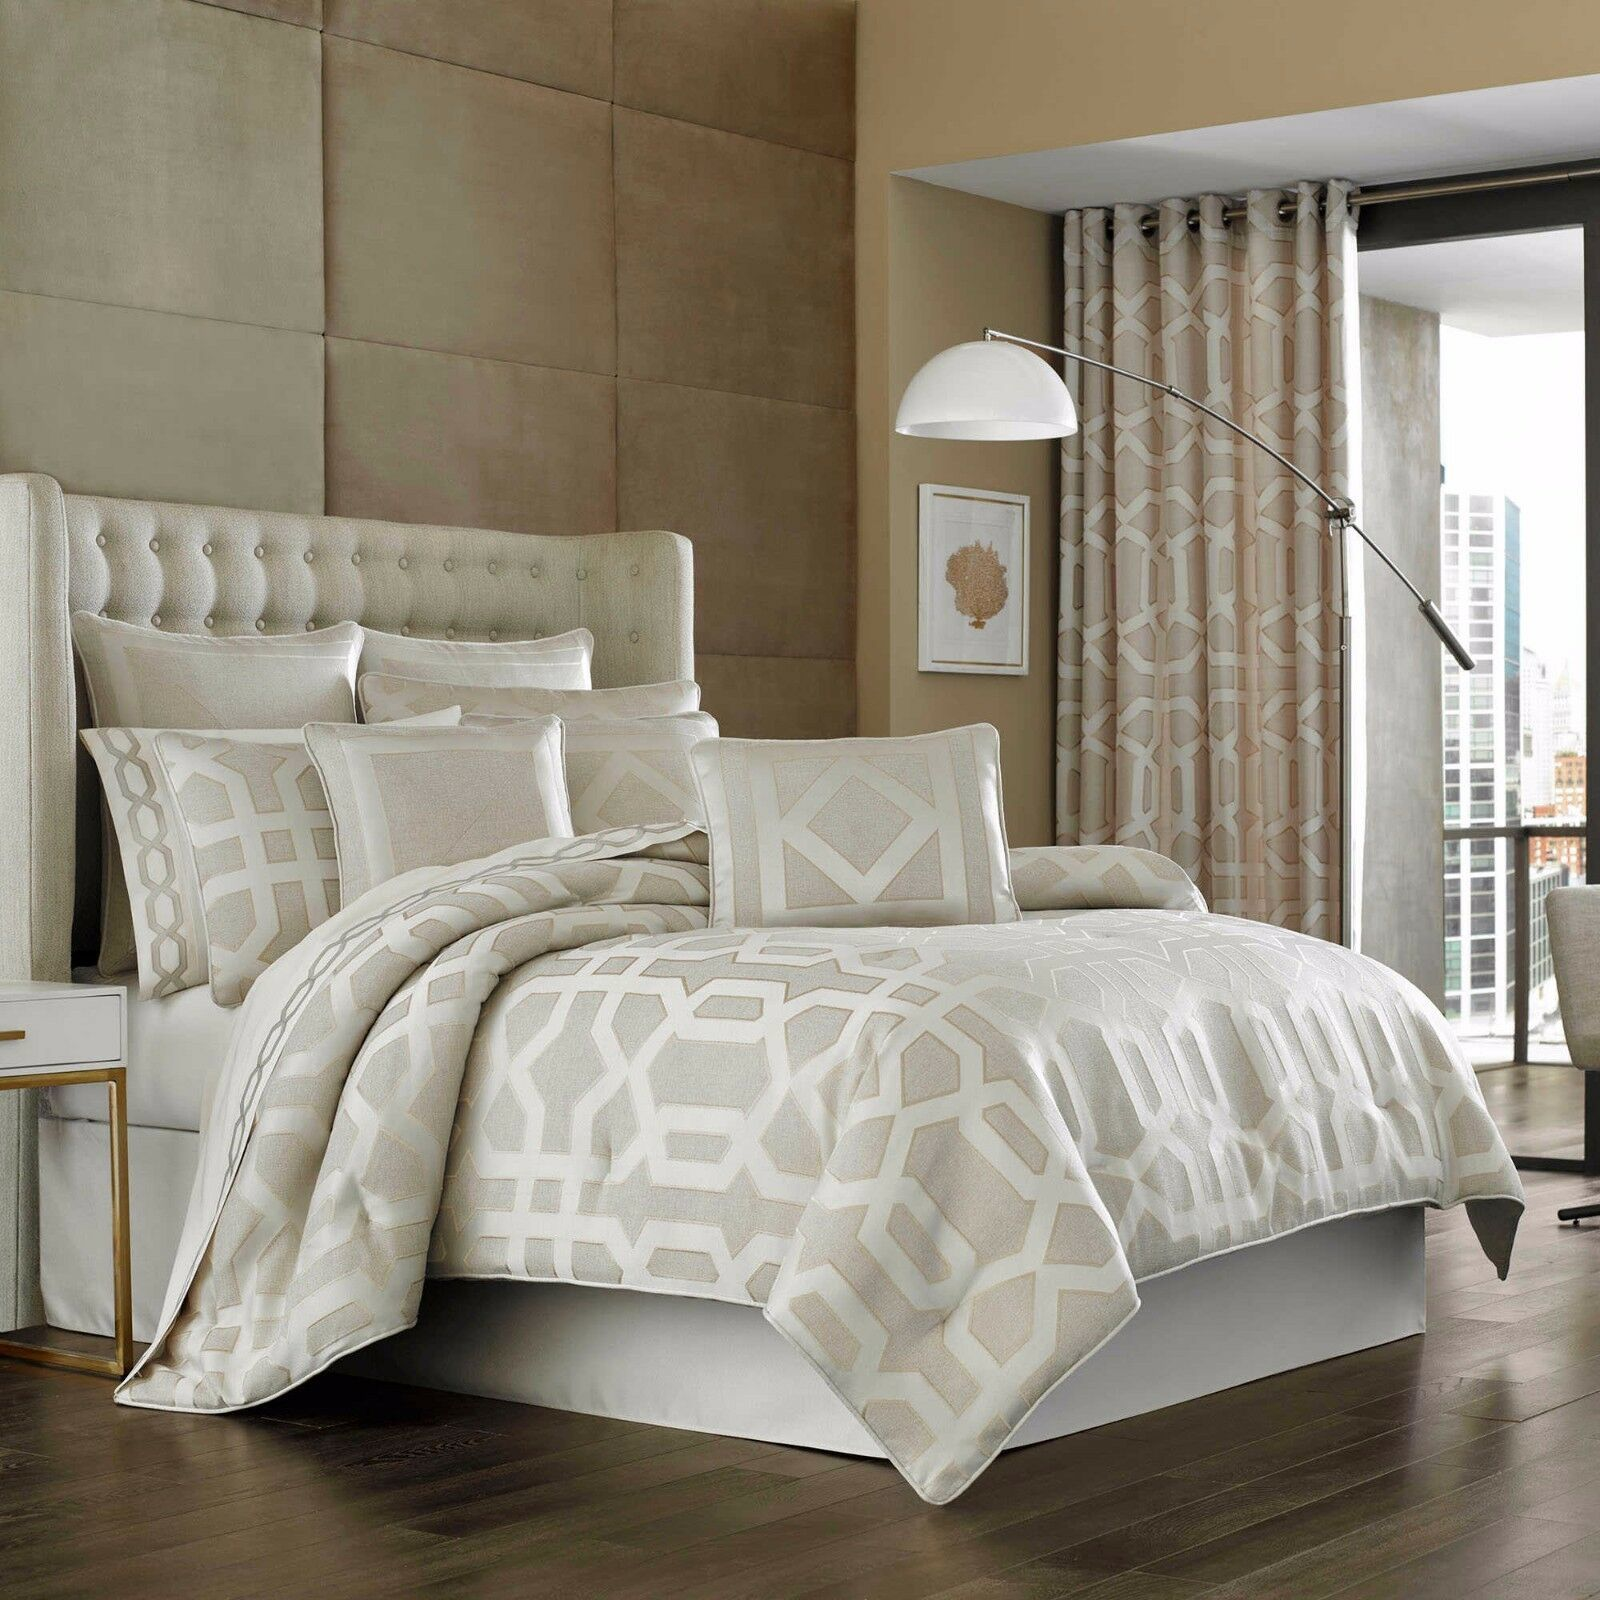 Primary image for New J. Queen New York Kingsgate 4 Piece Queen Comforter Set Ivory